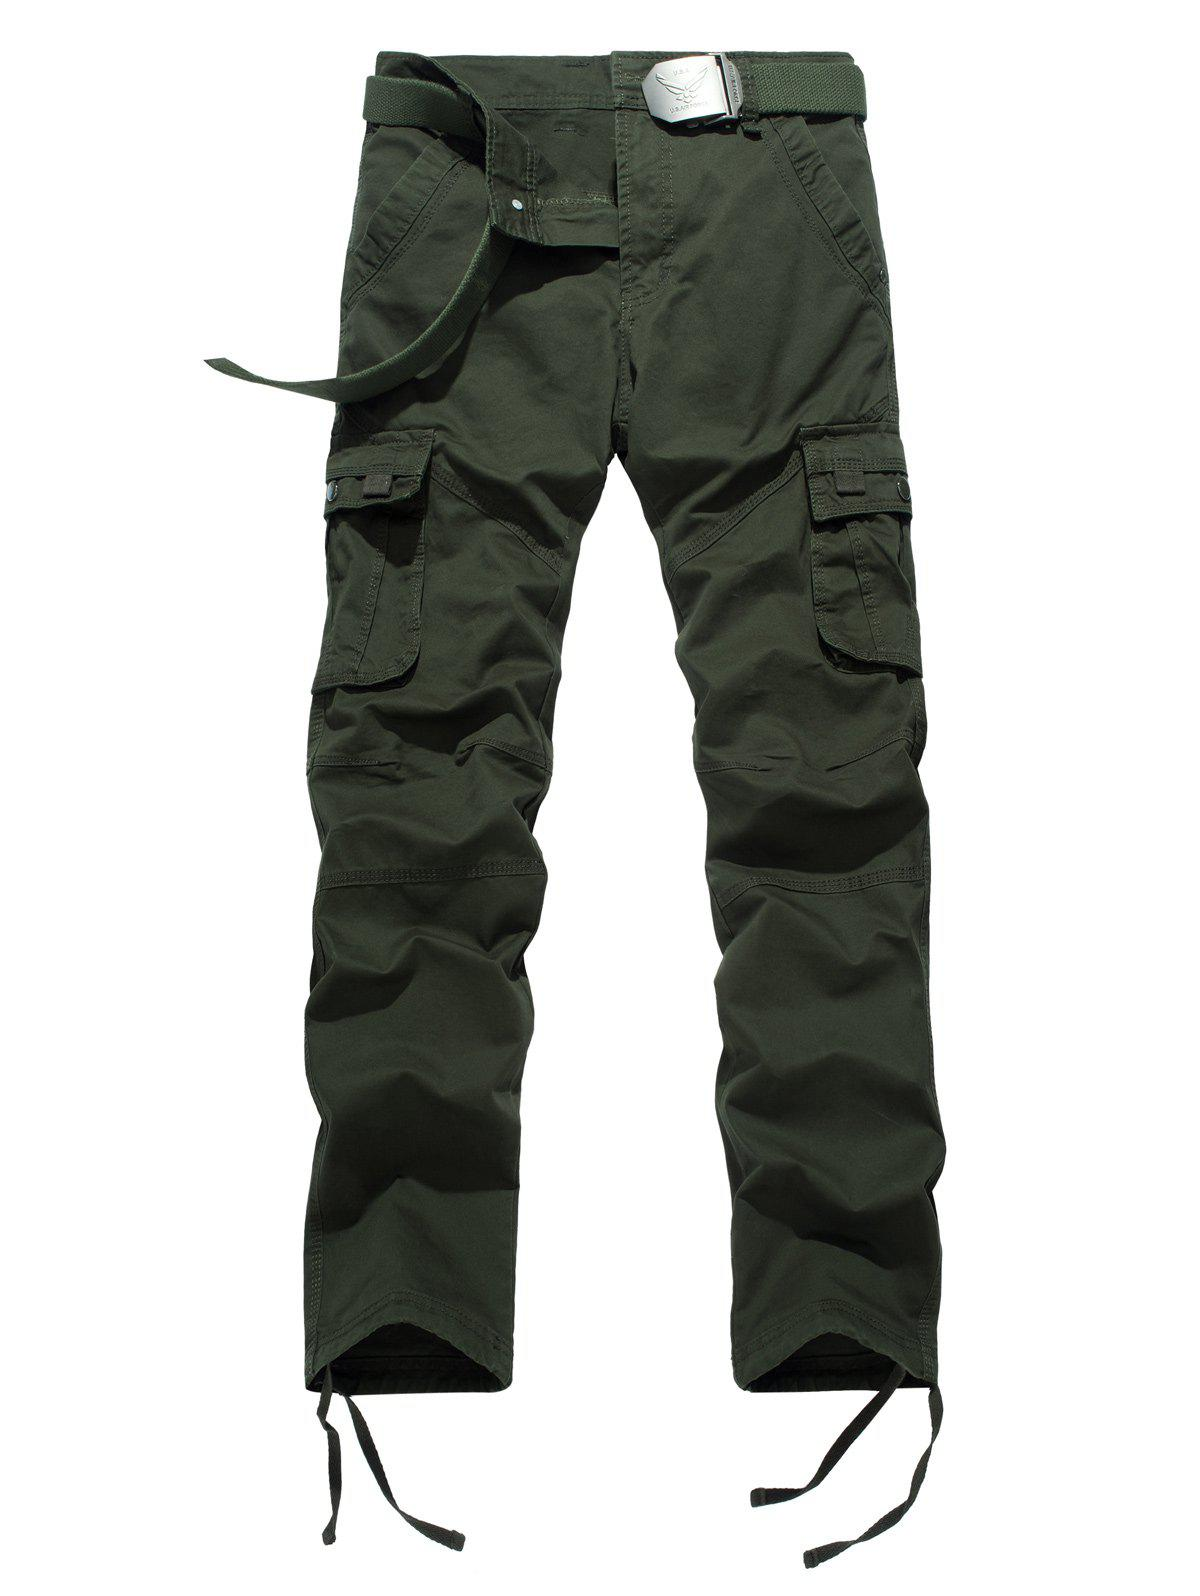 dcbfd9f2276 2019 Plus Size Zipper Fly Pockets Design Drawstring Cargo Pants ...